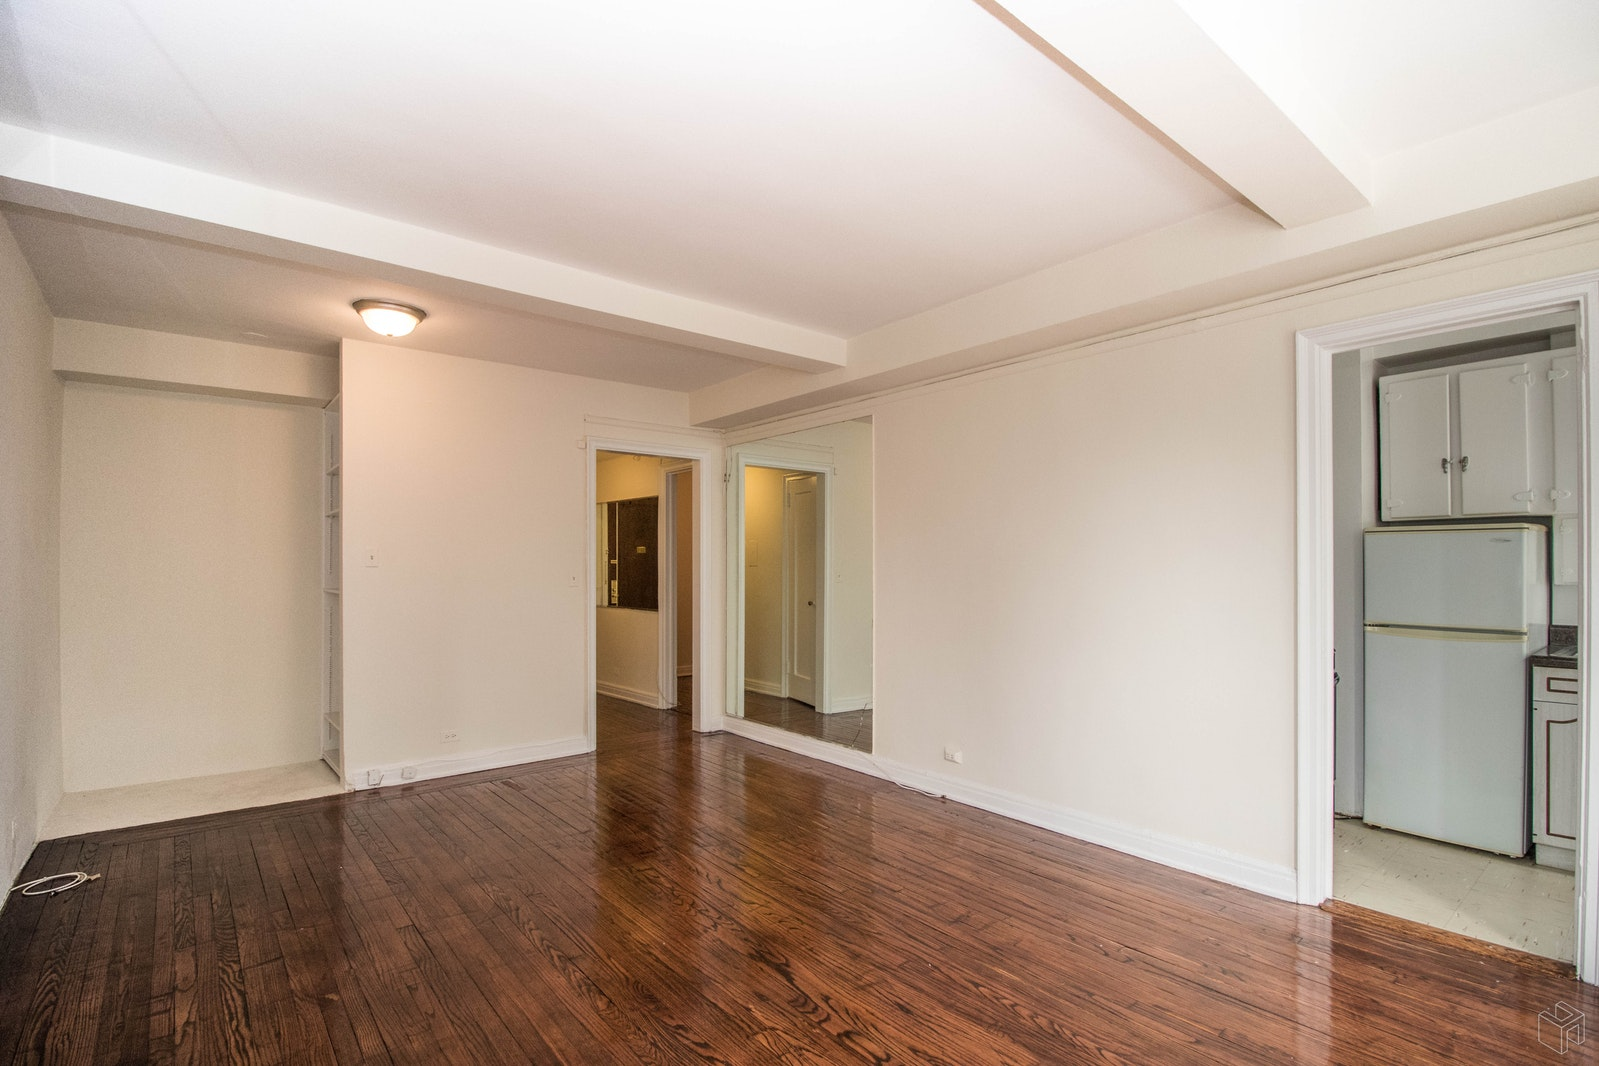 350 West 57th Street 5c, Midtown West, NYC, 10019, Price Not Disclosed, Rented Property, Halstead Real Estate, Photo 4